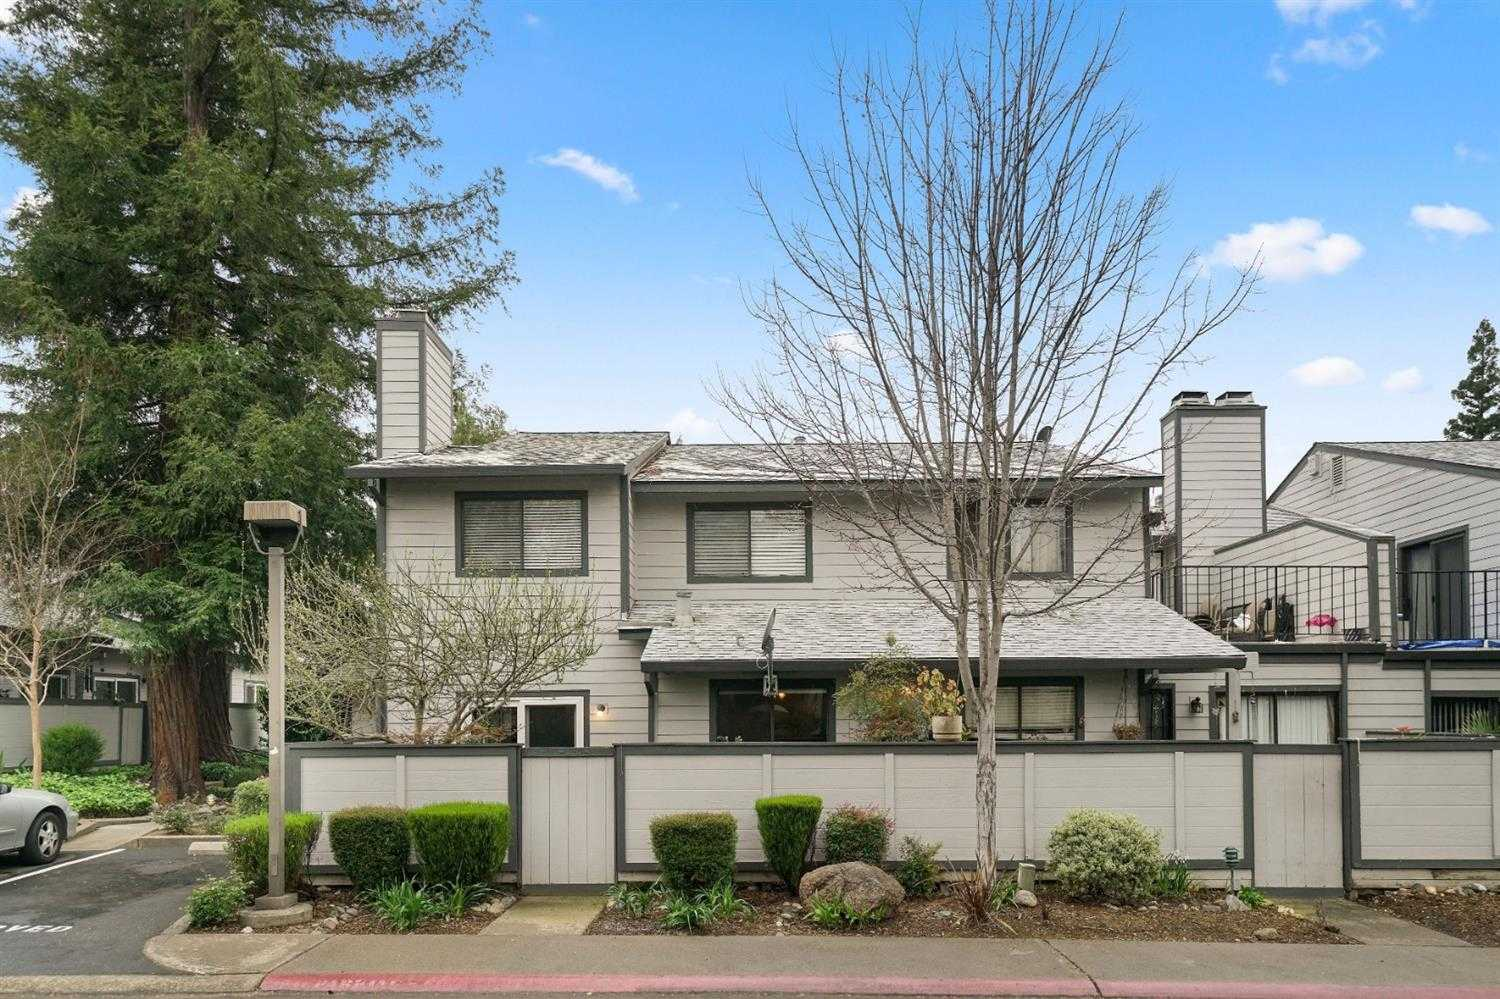 $299,995 - 4Br/3Ba -  for Sale in Citrus Heights